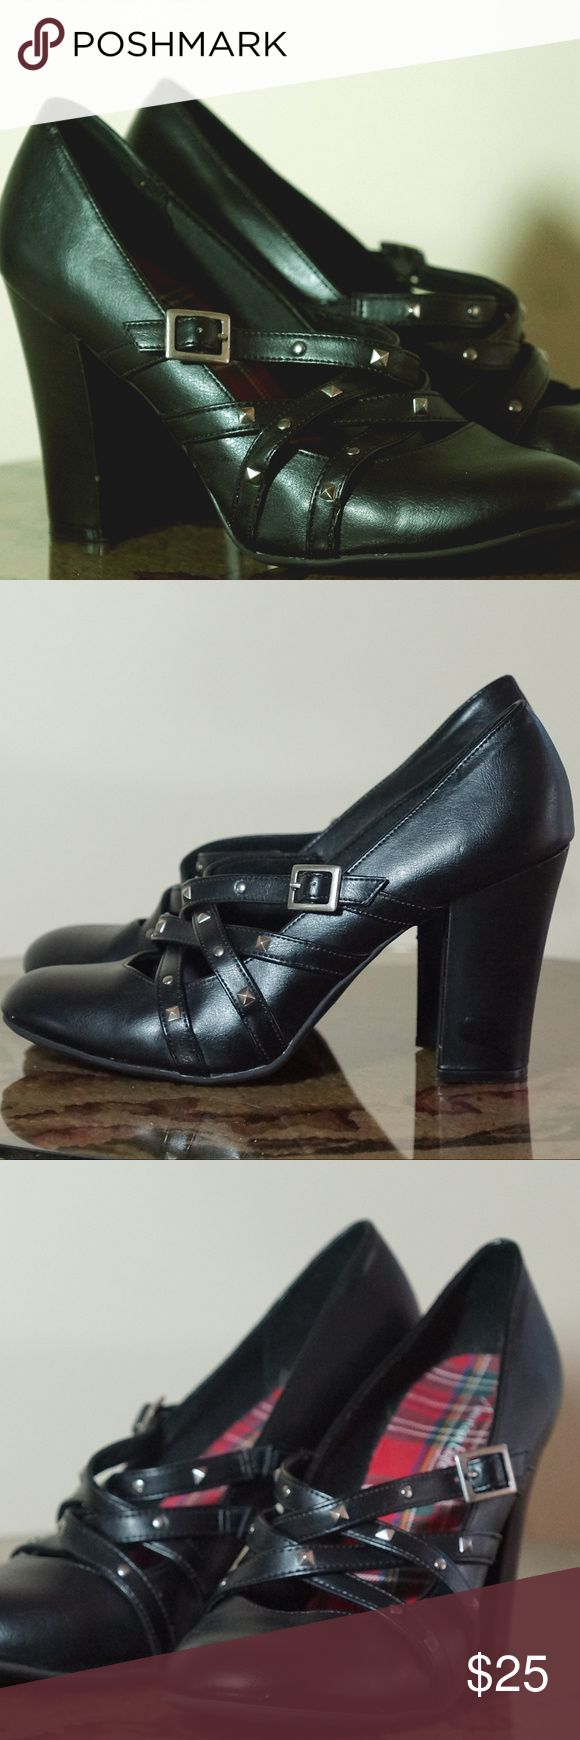 """NWOT AM EAGLE CHUNKY HEELS STRAPPY PROM WEDDING From American Eagle Super Sexy Stacked & Strappy- 4"""" CHUNKY Heels SIlver Side Buckles Silver Studded  Sexy 1/2"""" wide Straps Size 10 No box included- floor models- may have been walked in, but never actually worn! See pics American Eagle Shoes Heels"""